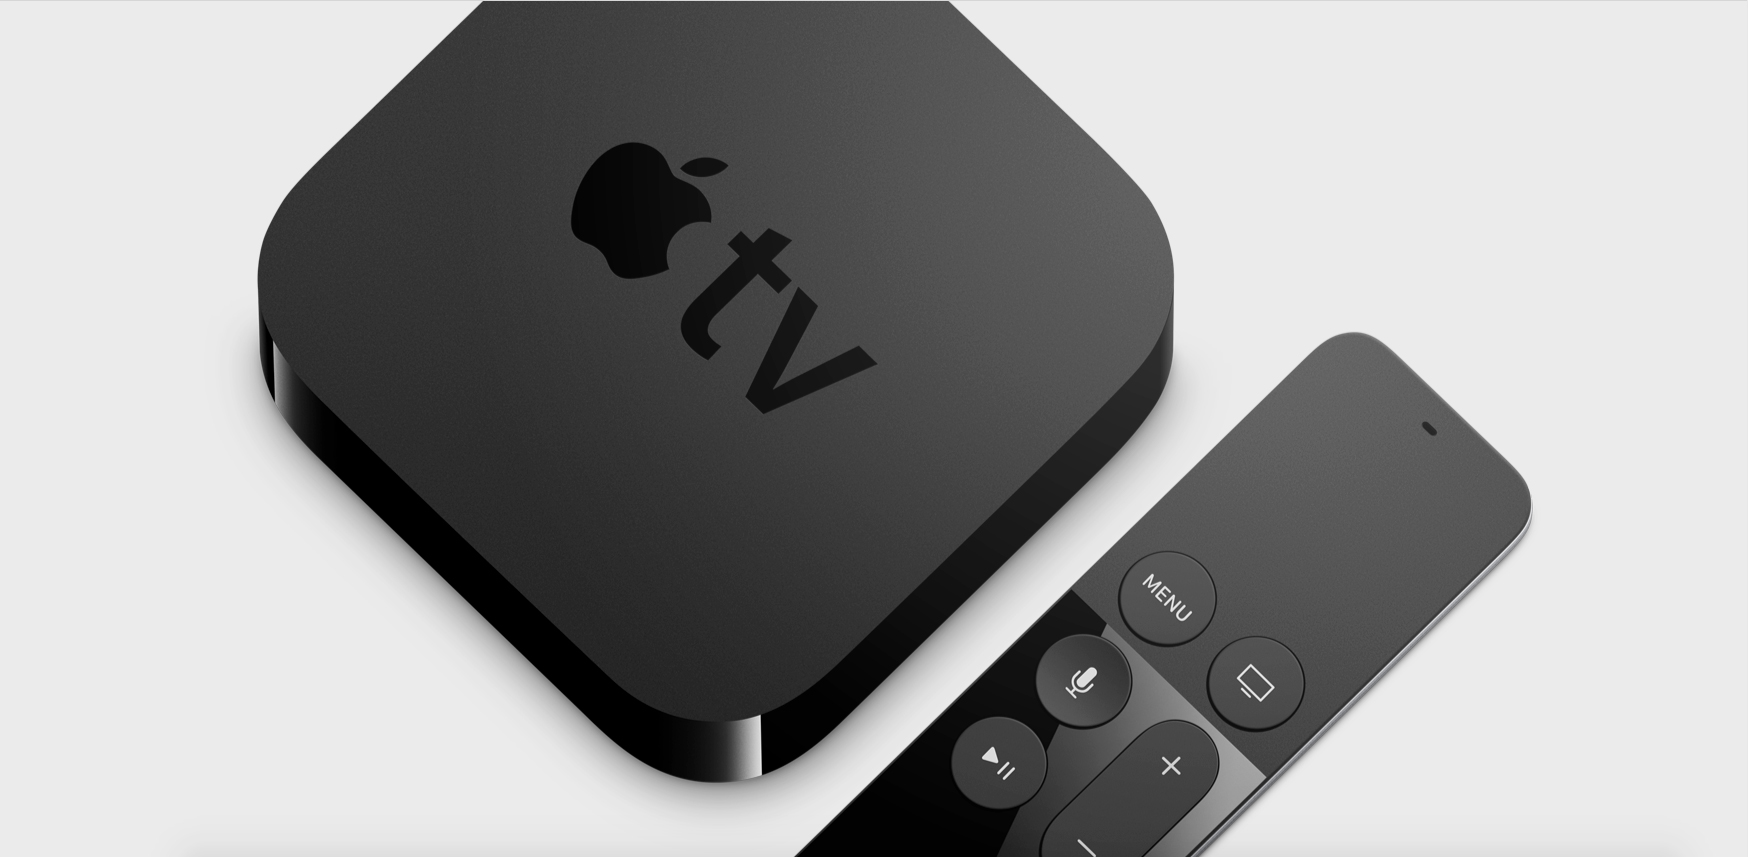 The new Apple TV is now available to order